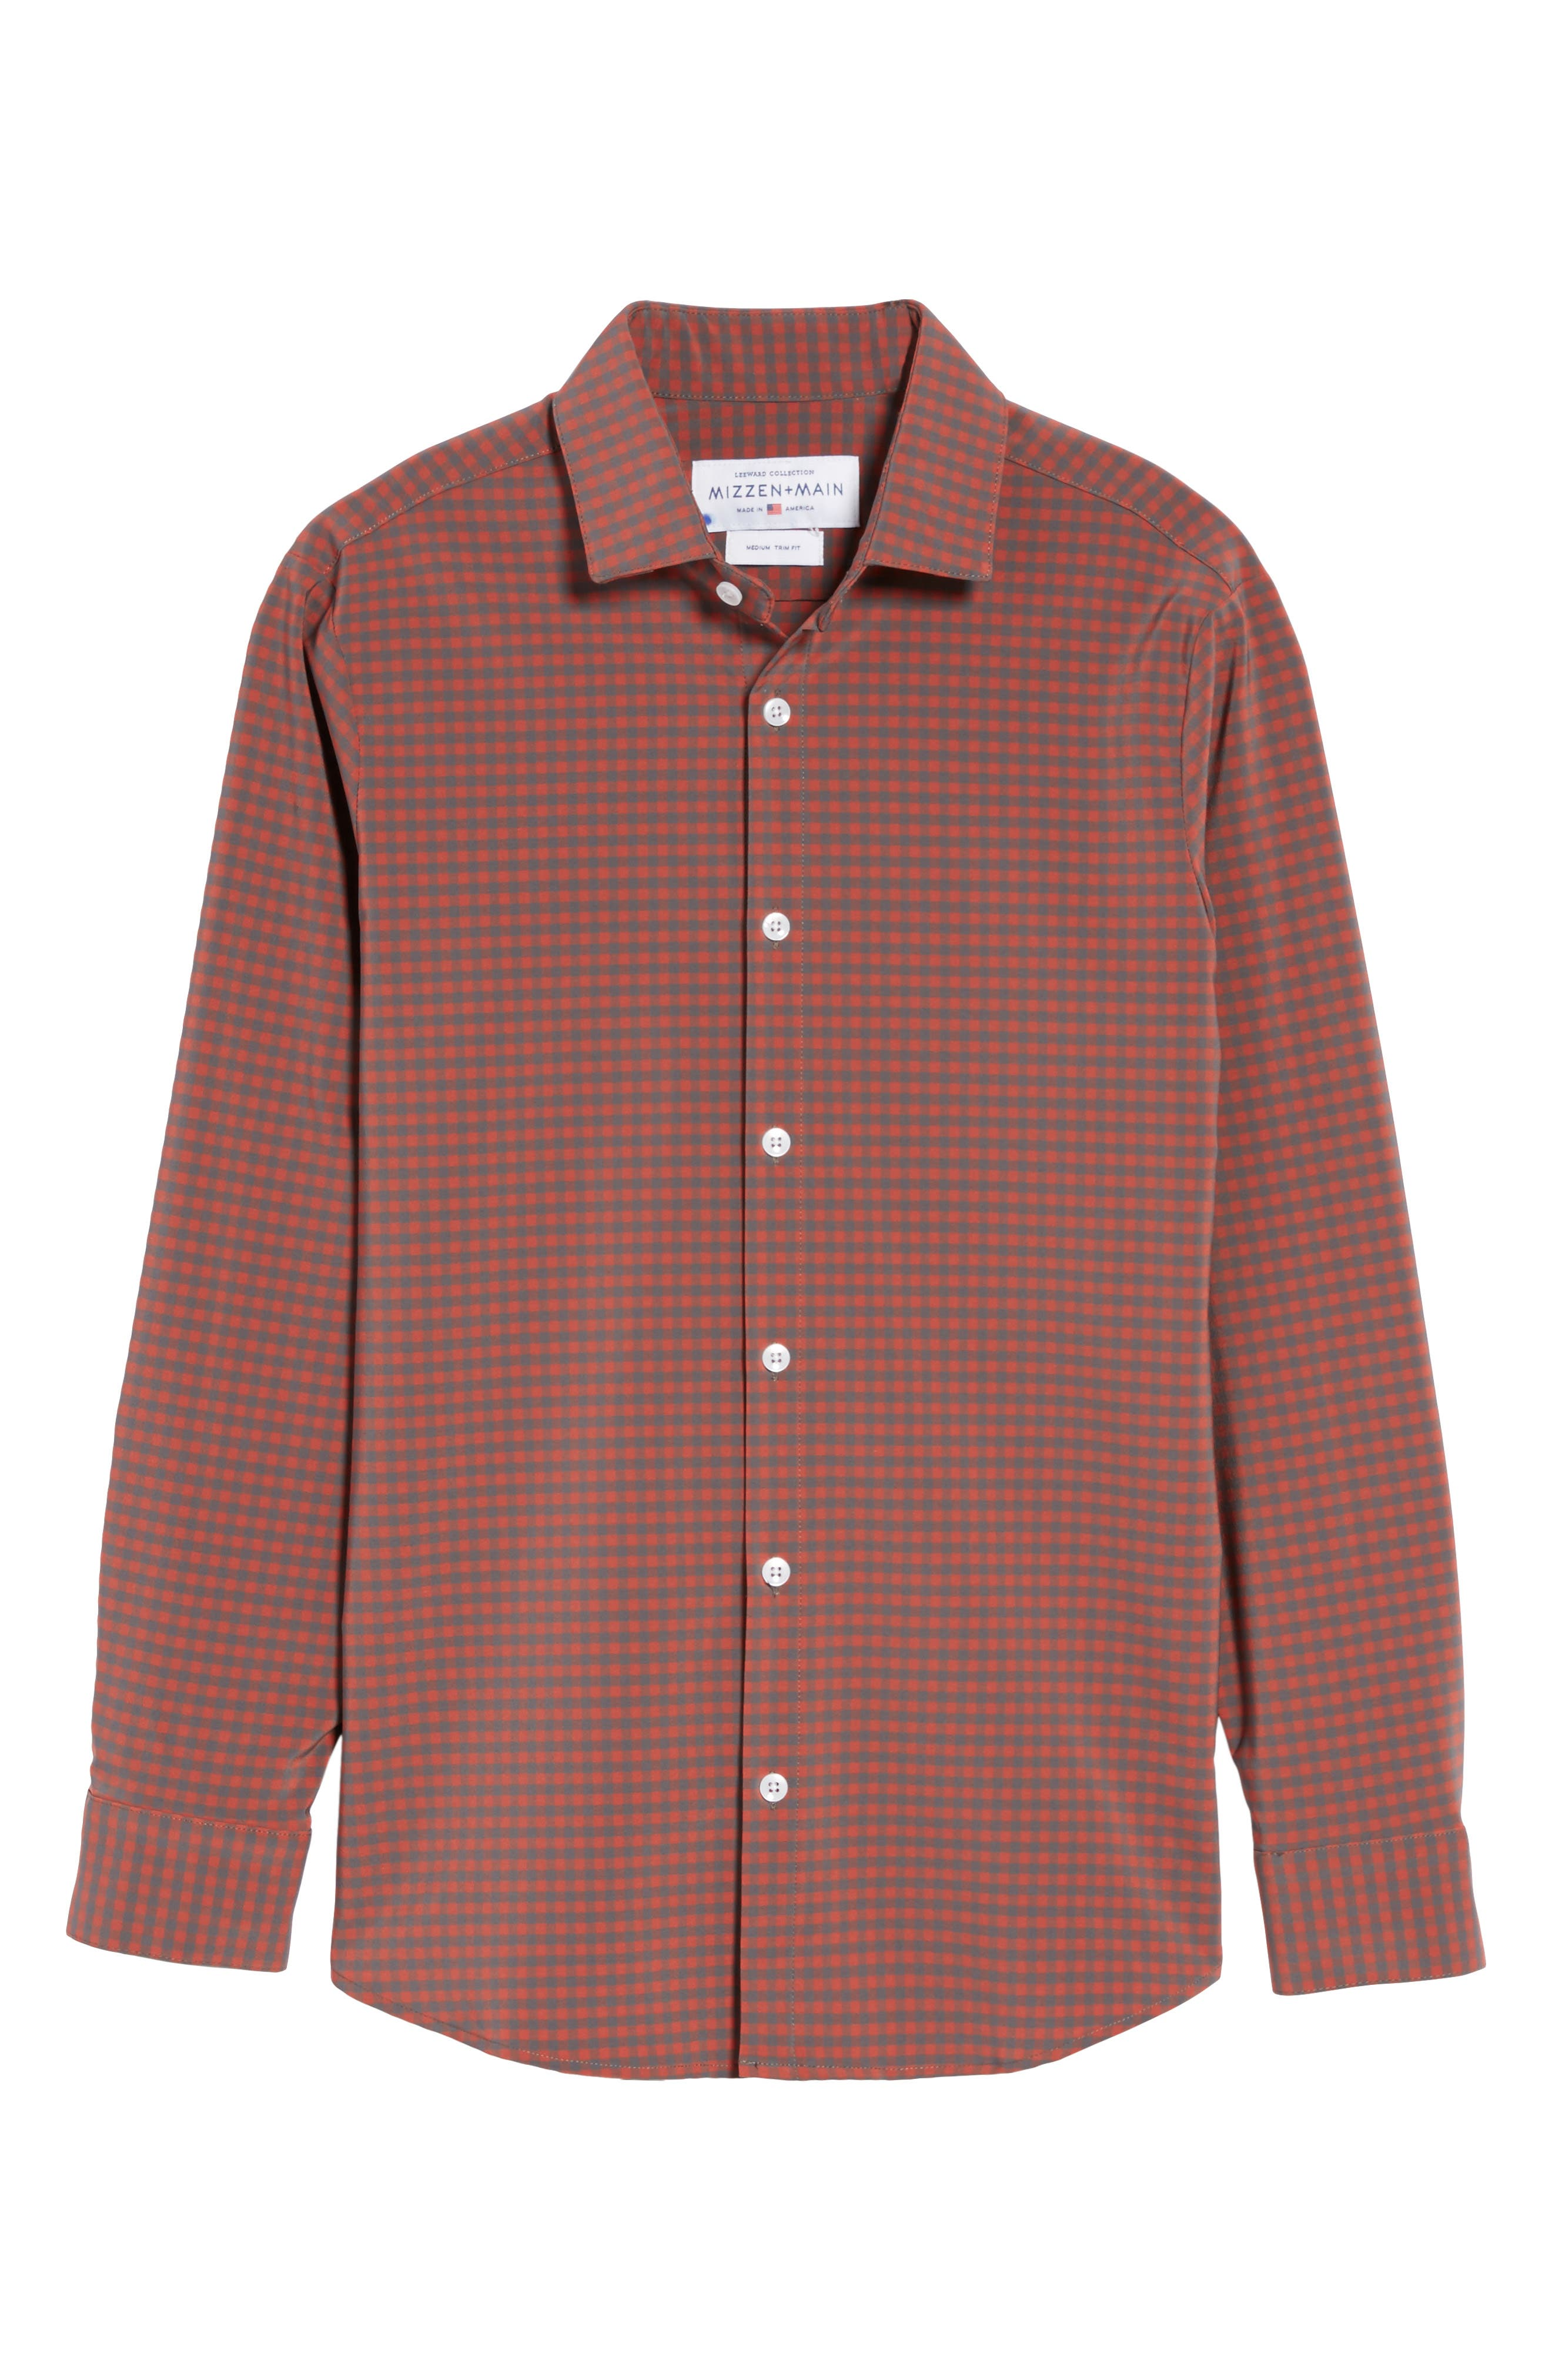 Douglas Grey & Chili Check Sport Shirt,                             Alternate thumbnail 6, color,                             RED